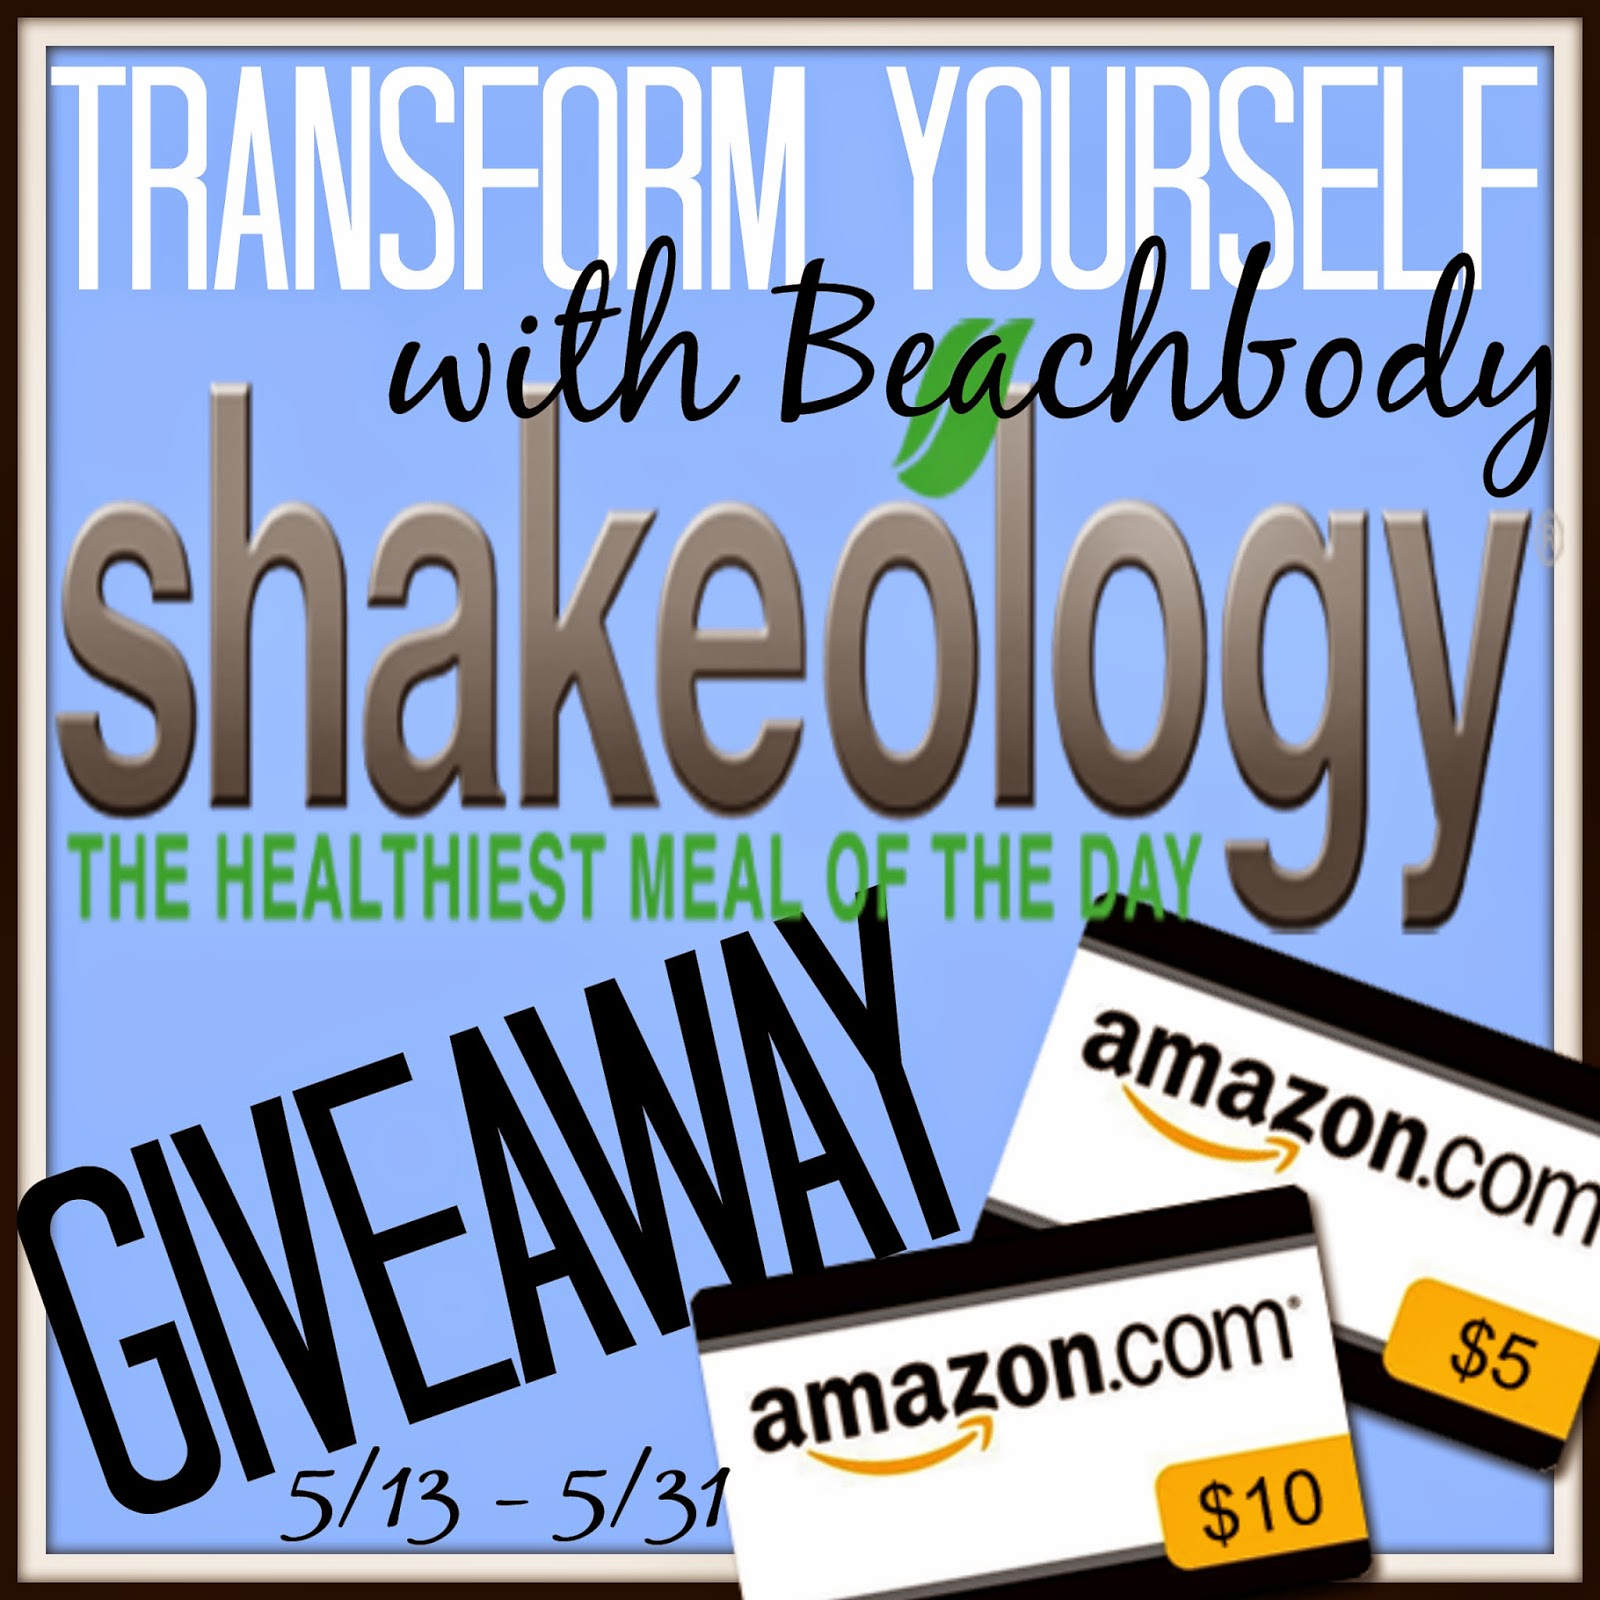 Beachbody & Amazon Giveaway